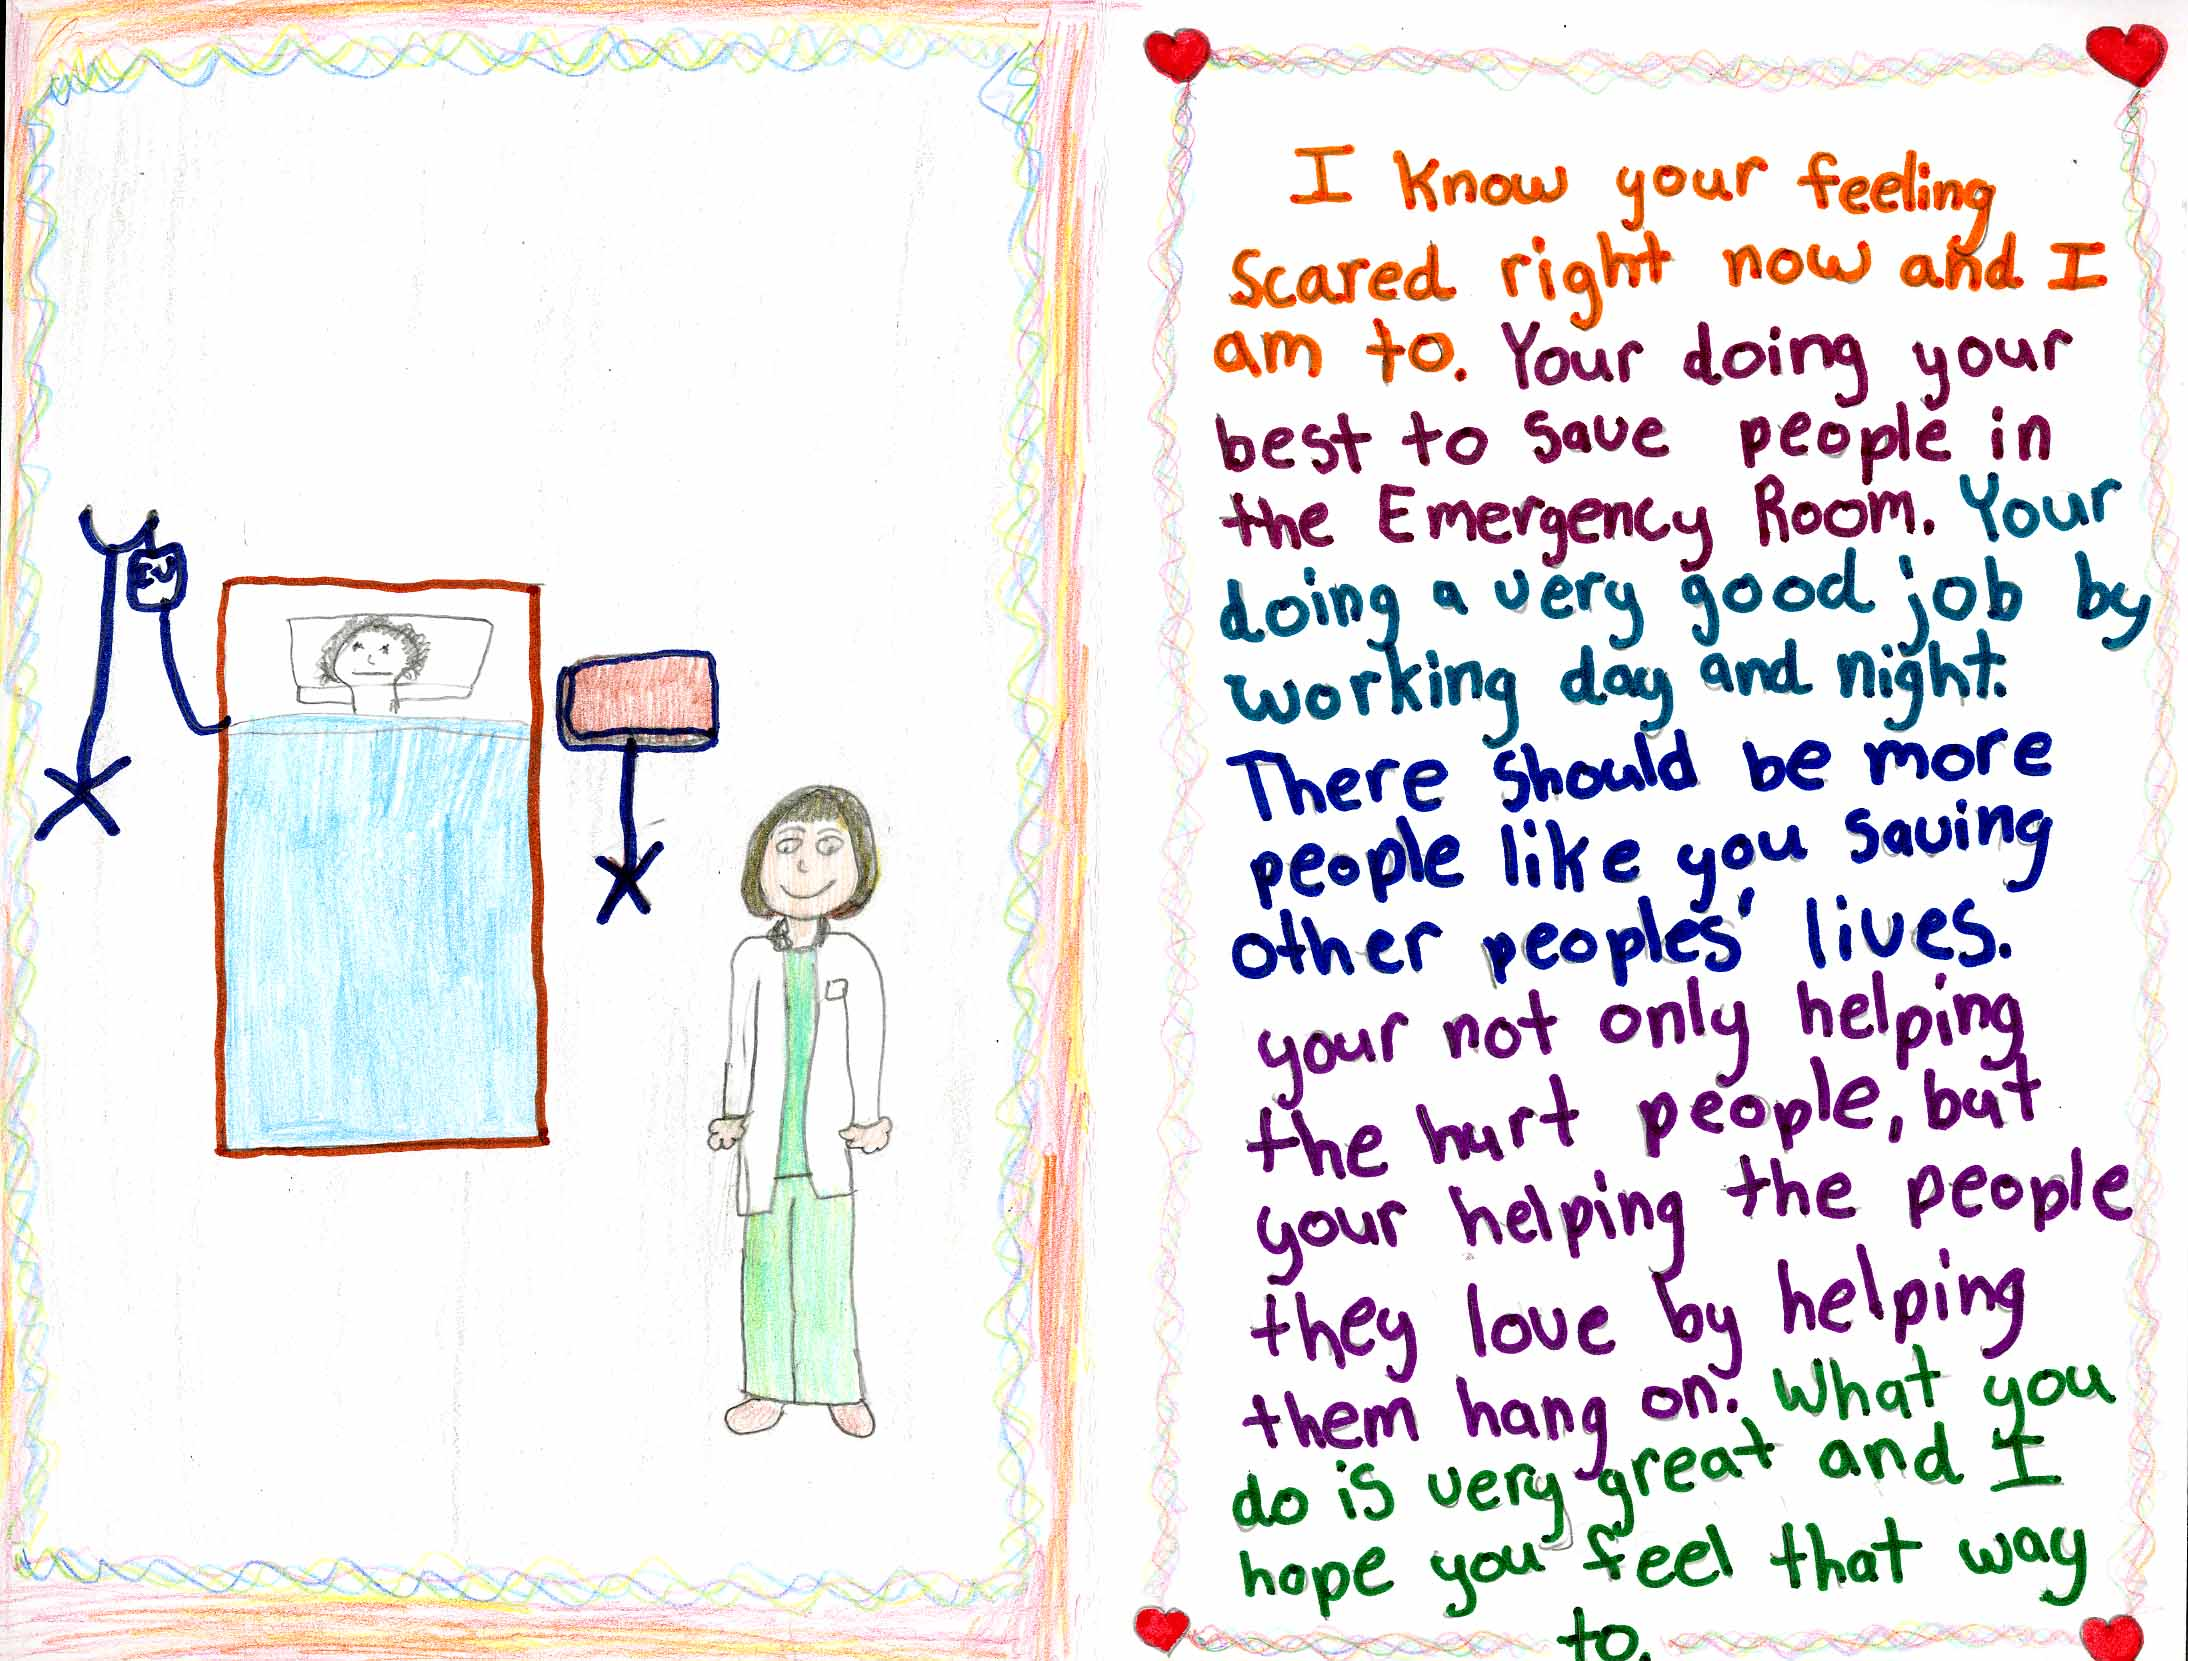 Children's card with handwritten message of hope and gratitude for doctors, with a drawing of a standing doctor next to a patient in bed.